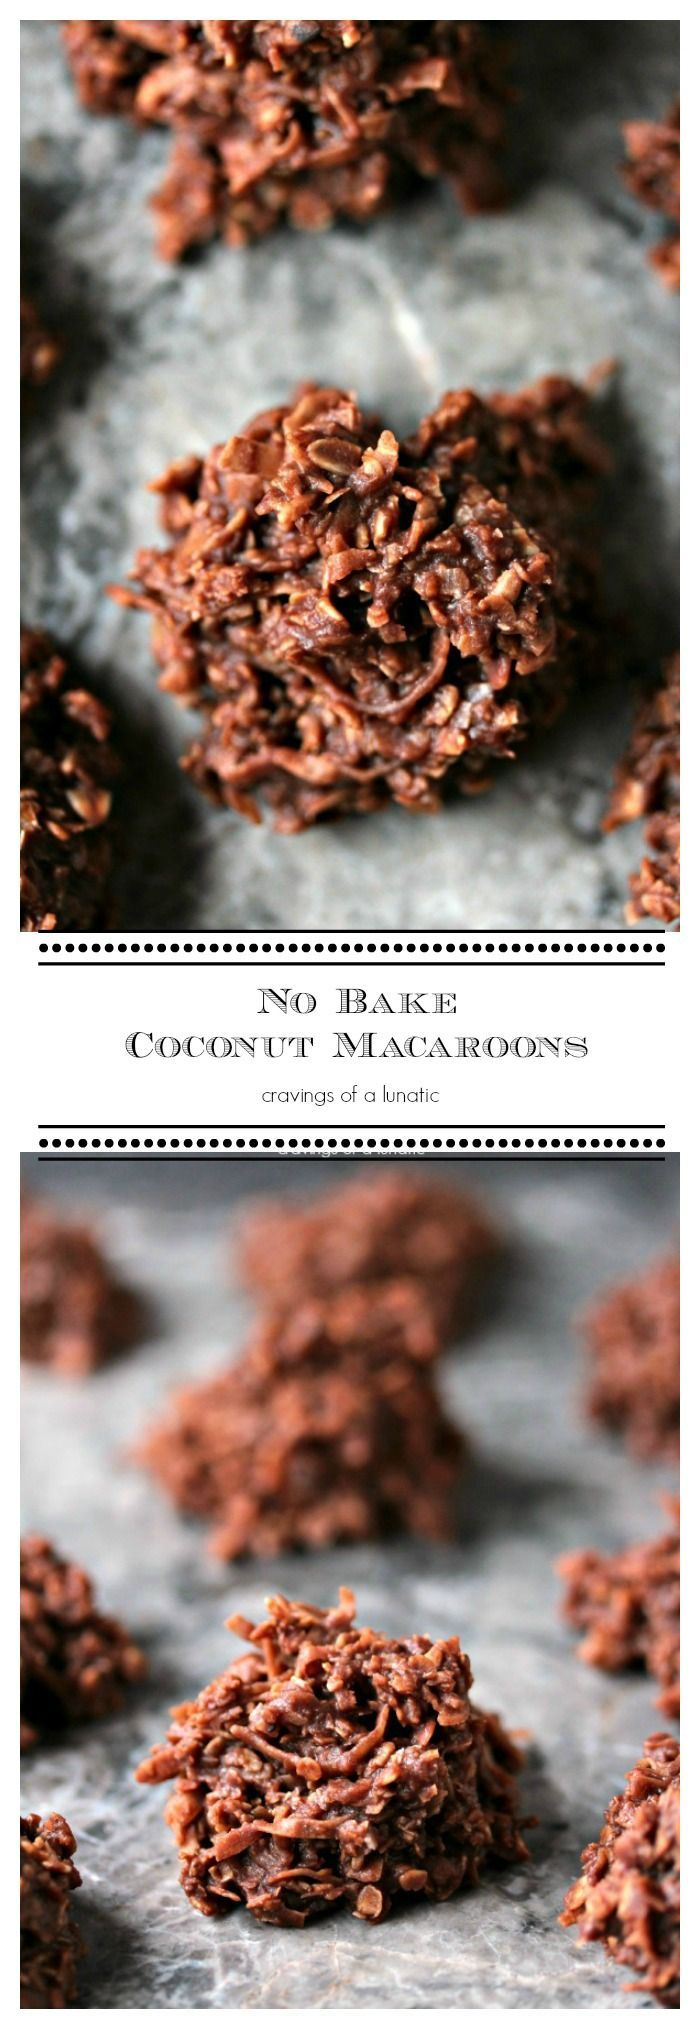 No Bake Coconut Macaroons from cravingsofalunatic.com- Simple, quick No Bake Cookies that will impress your guests without them ever guessing they took you about 10 minutes. (@CravingsLunatic)